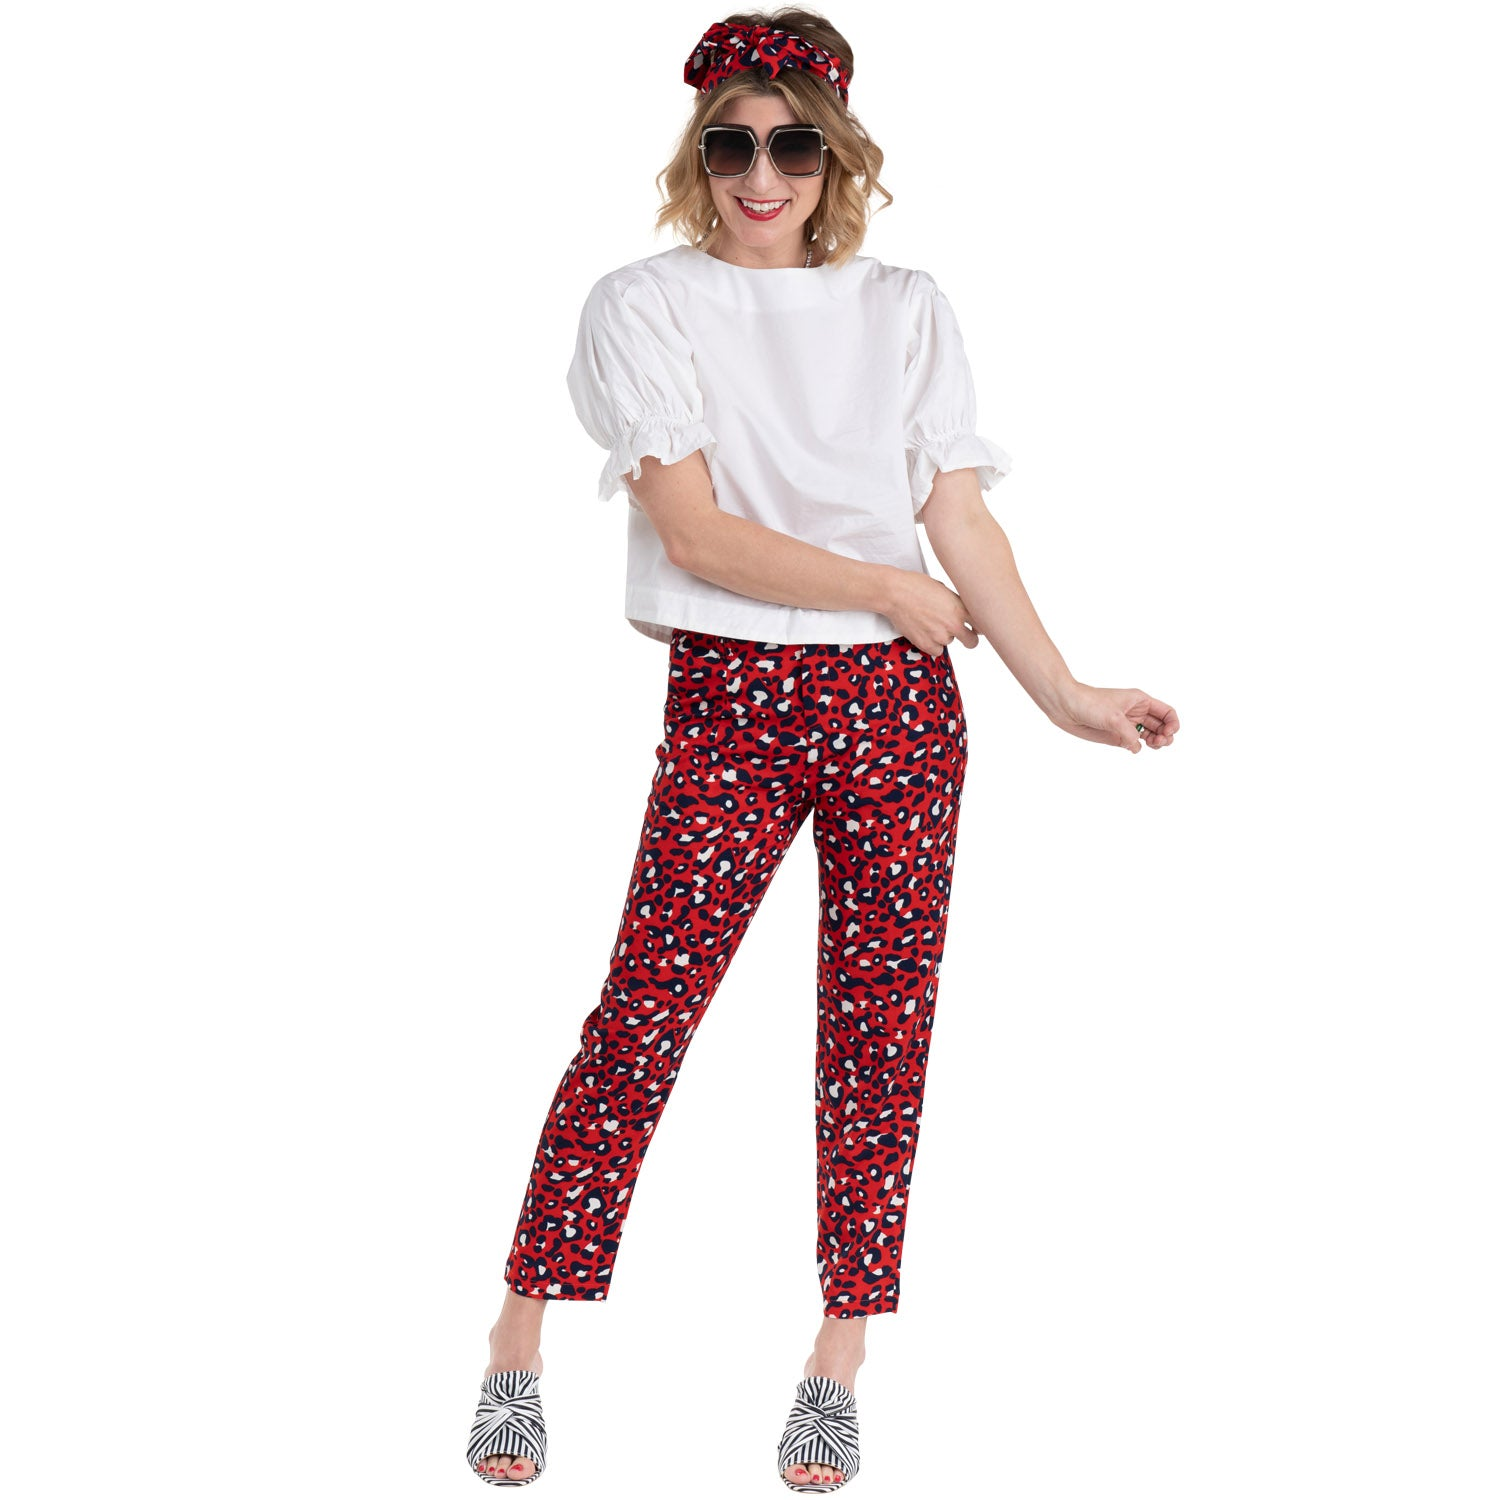 f2db2f2fe47824 ... black tie top tank and samson jeans. paradise puff sleeve top and red  leo printed pants